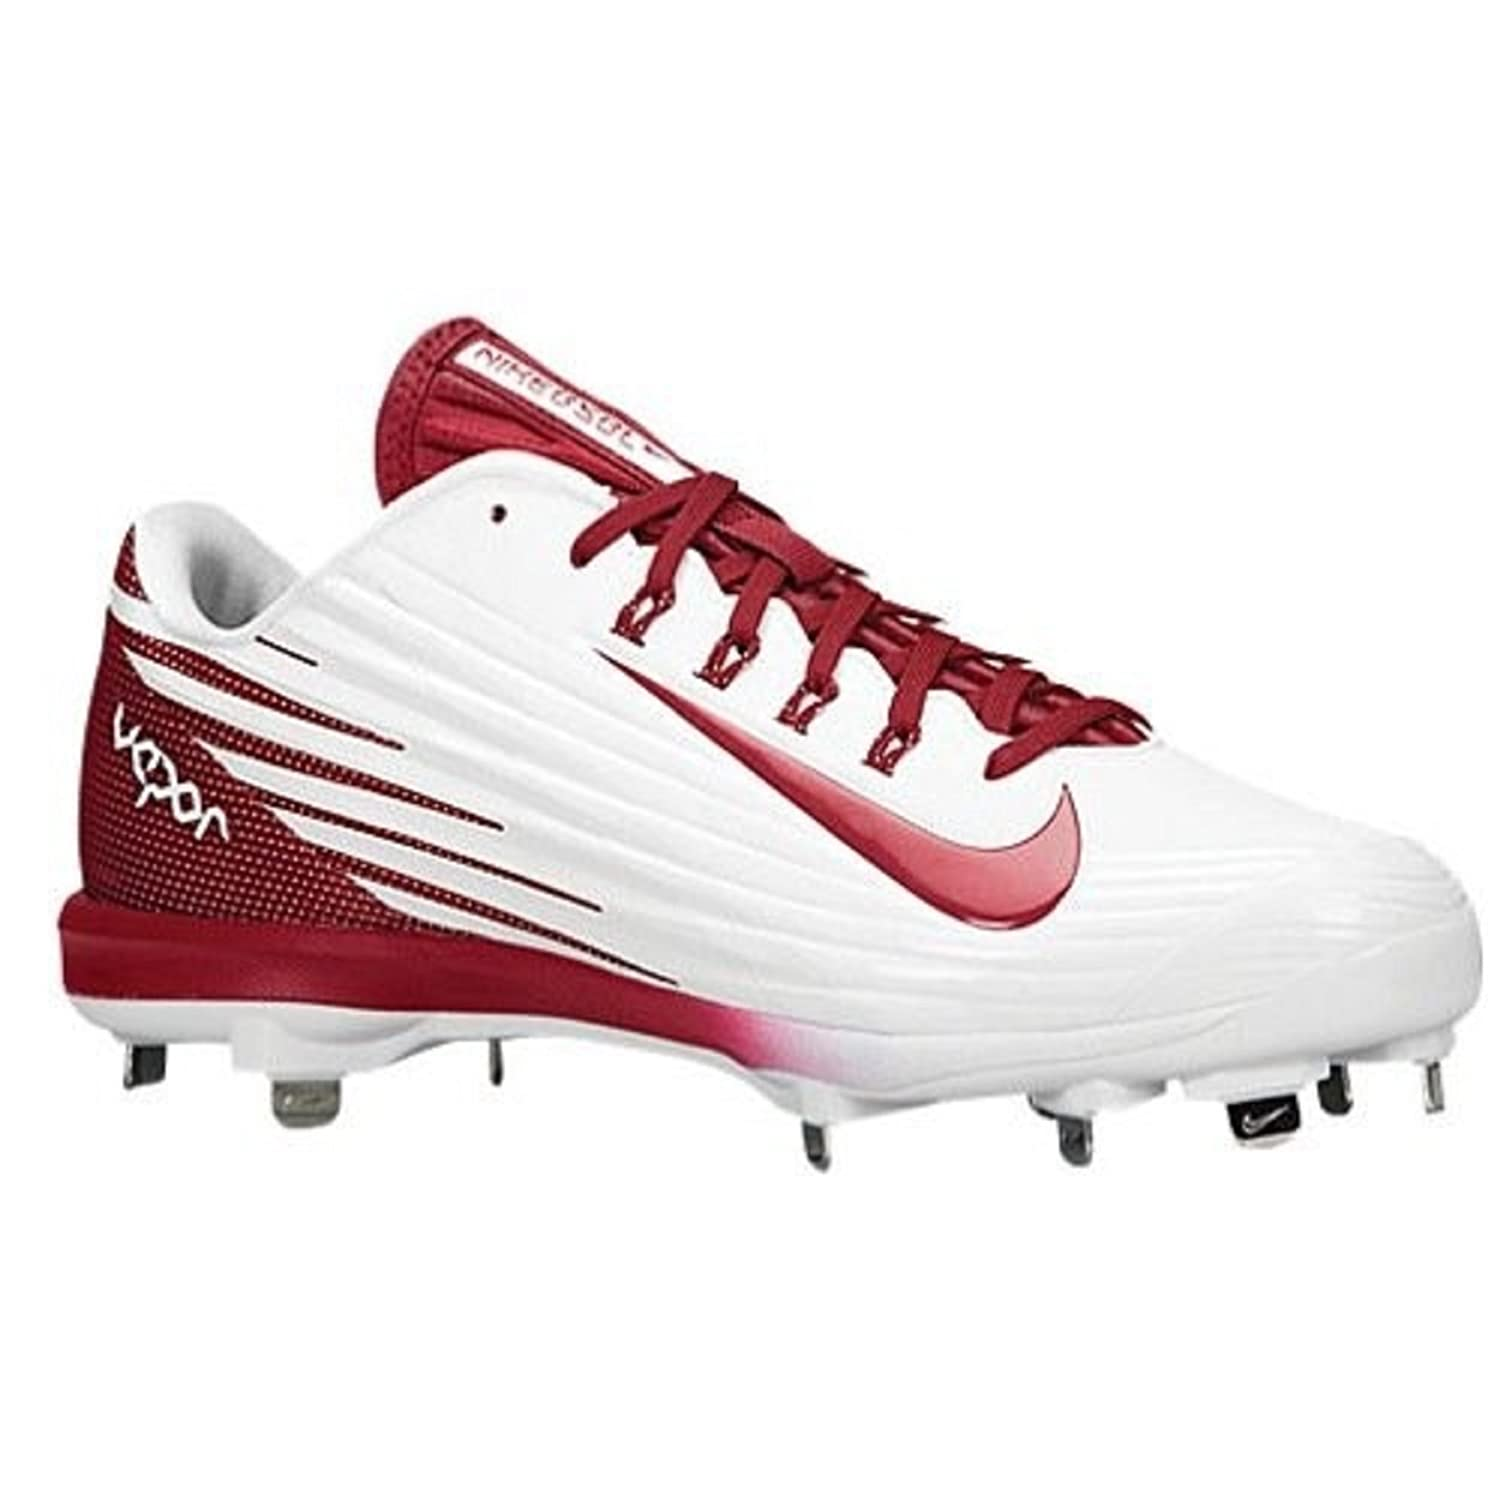 detailed look b9938 ff227 Nike Mens Lunar Vapor Pro Maroon White Baseball Cleats 683895 160 size 13.5  Amazon.ca ...